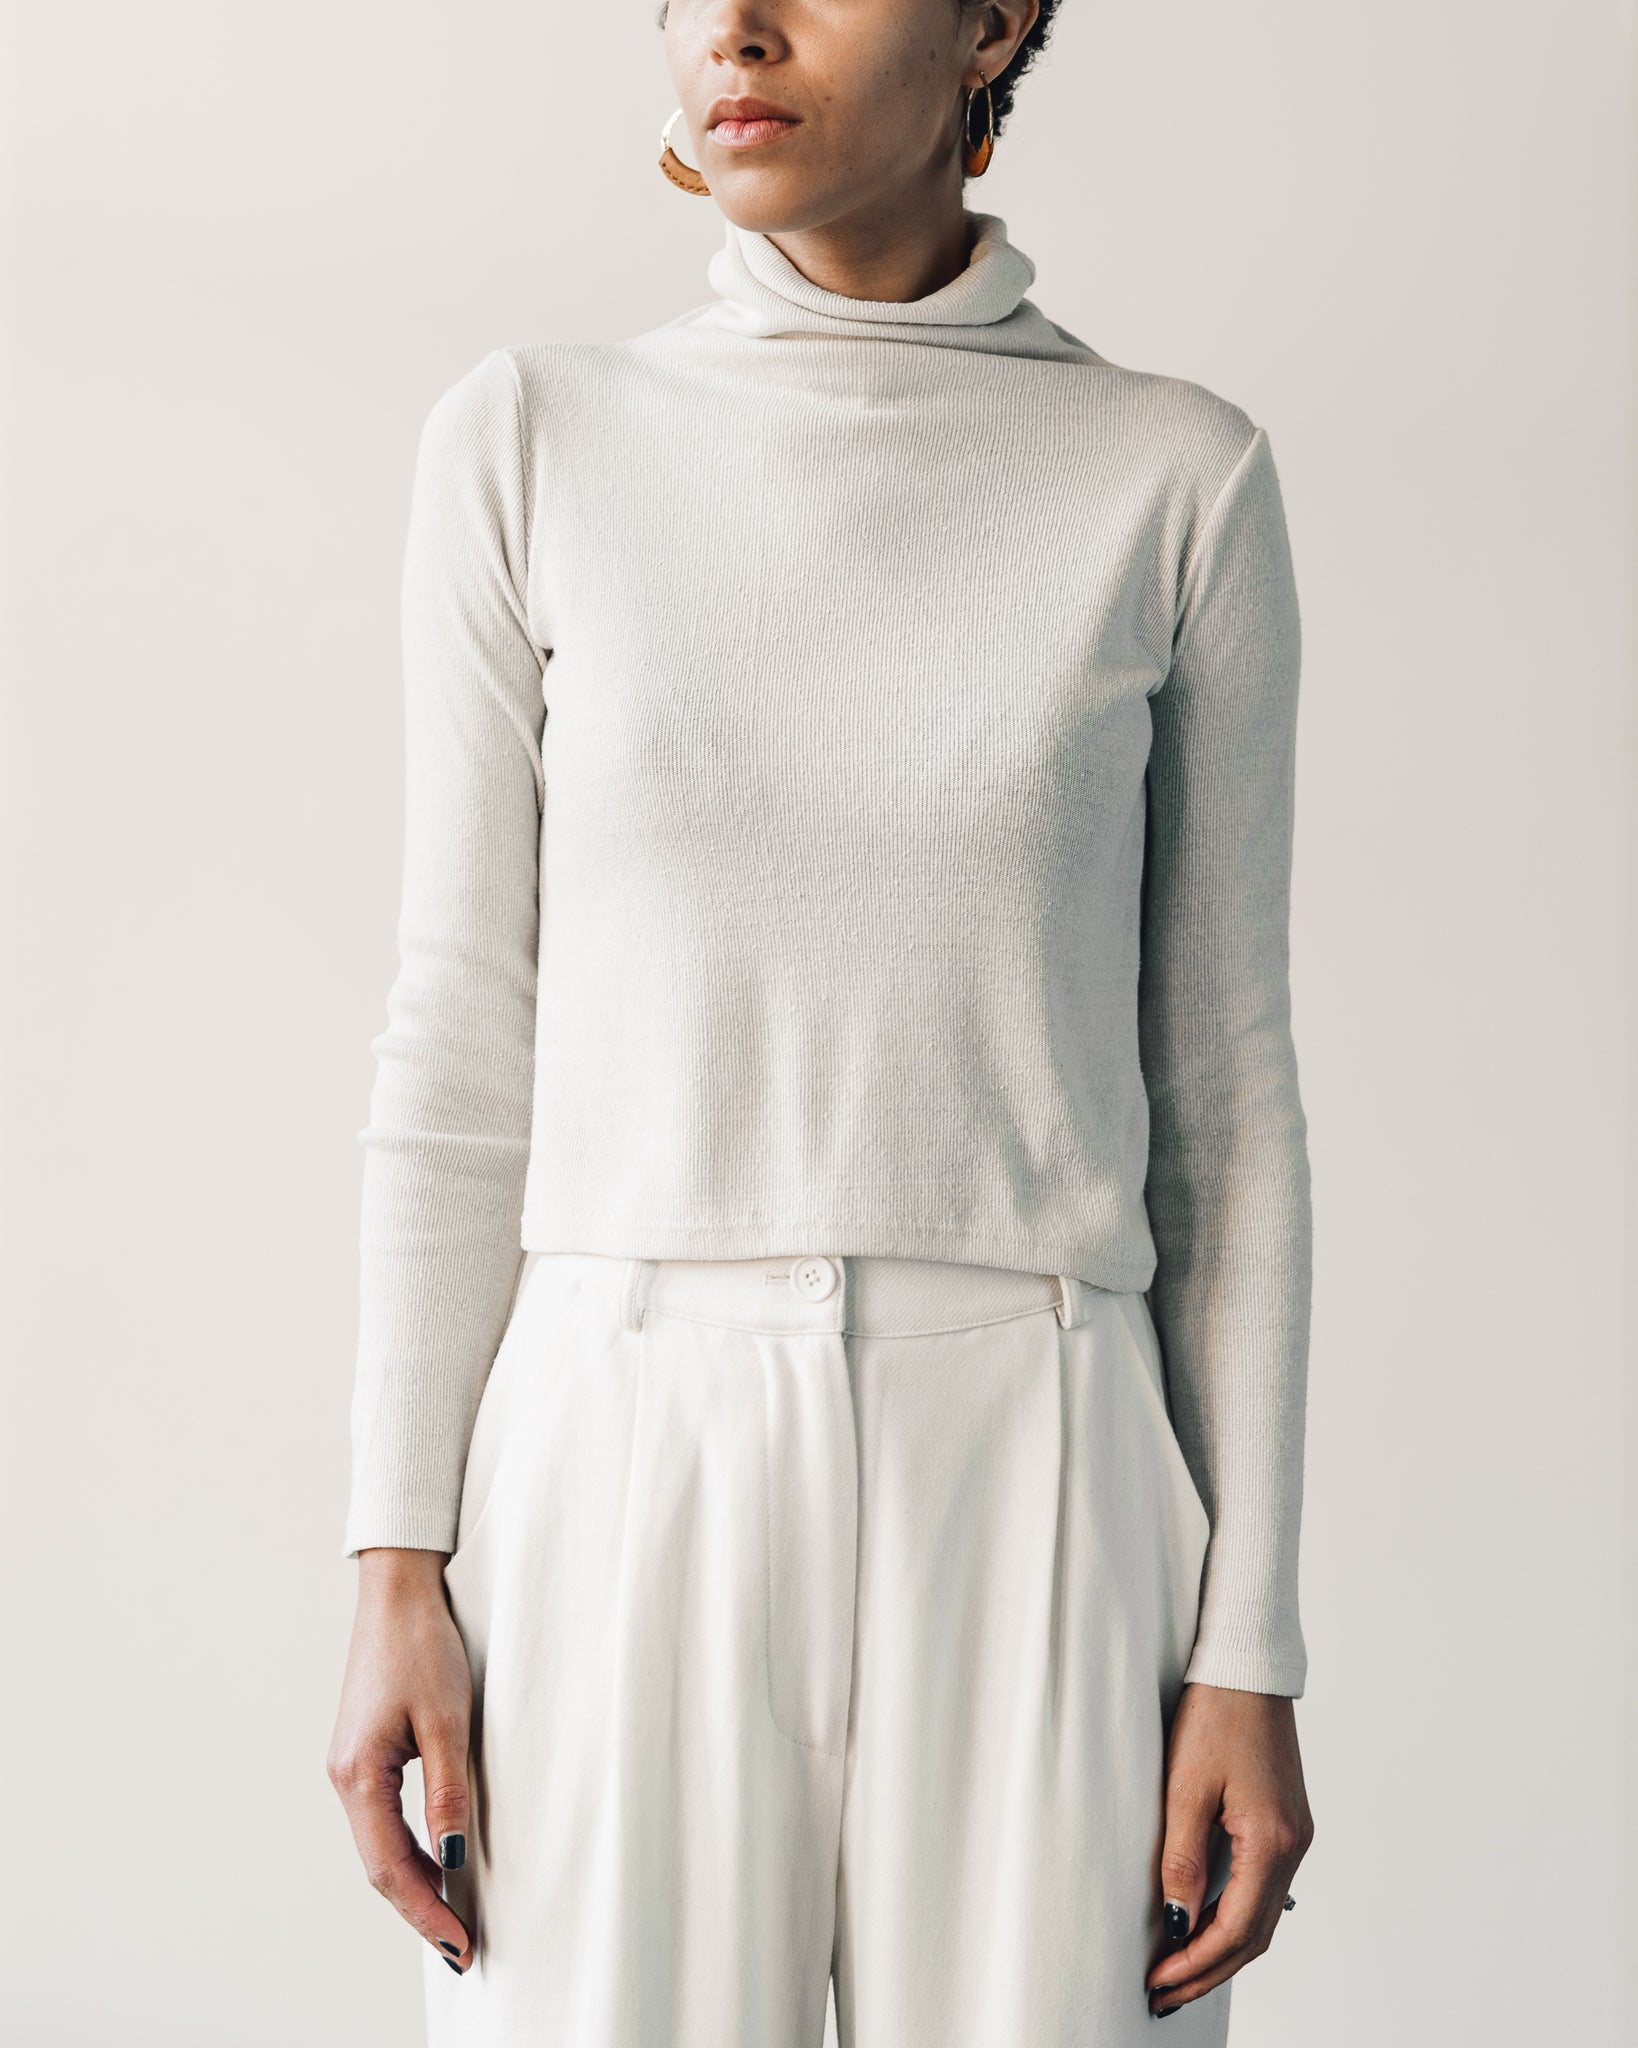 Ozma Marianne Turtleneck, Natural